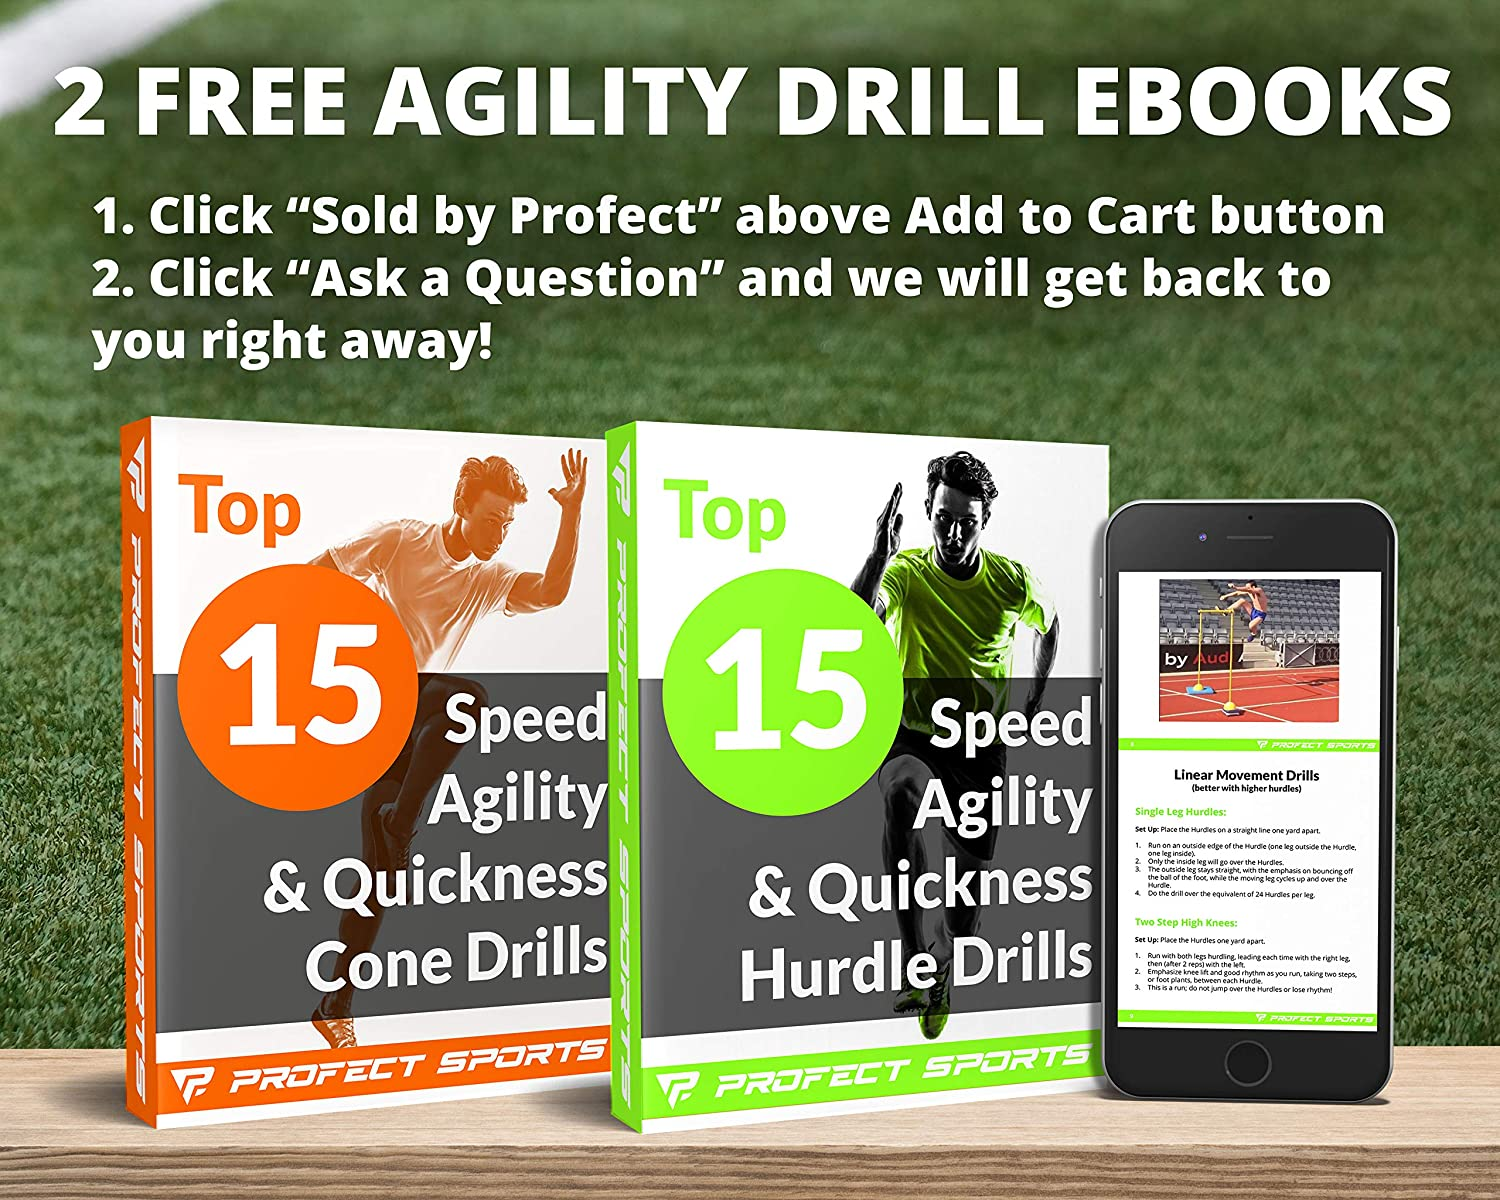 Plyometric Speed Training 6, 9 or 12 Height Pro Adjustable Hurdles and Cone Set Sports Includes Carry Bag /& 2 Agility Drills eBooks with 12 Disc Cones for Soccer 6 Agility Hurdles